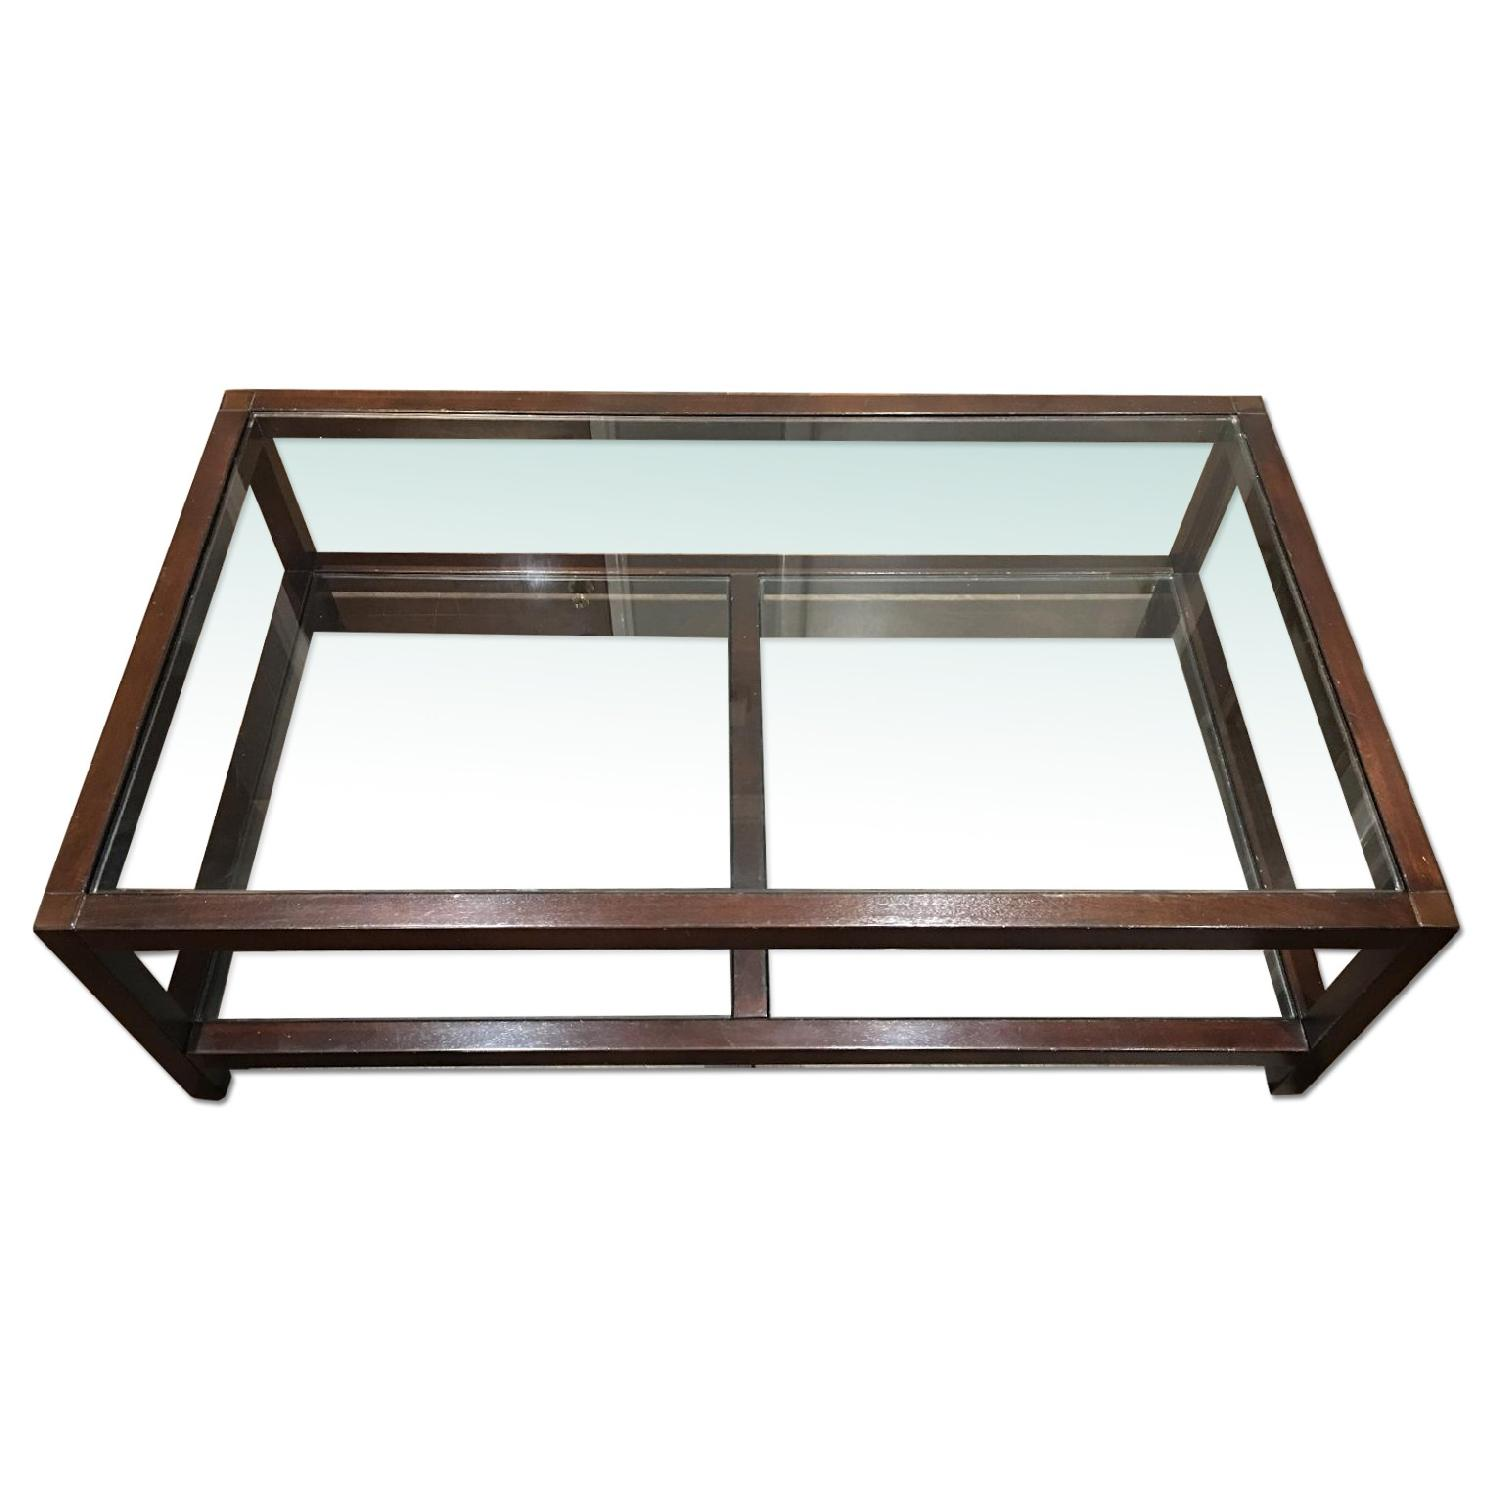 Pottery Barn Glass & Wood Coffee Table - image-0